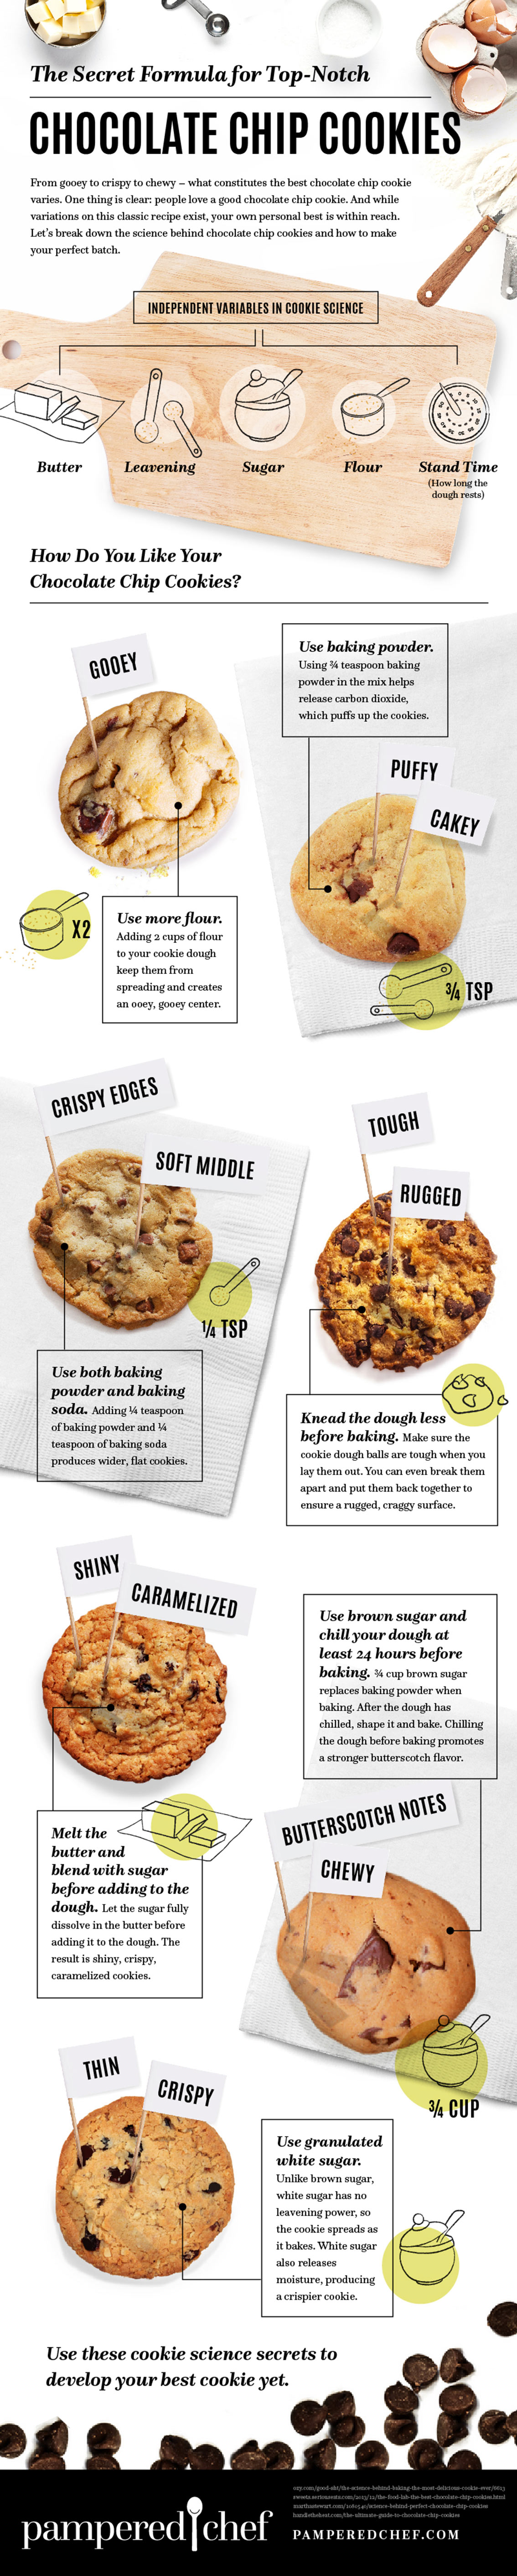 Secret Formula for Baking Chocolate chip Cookies Infographic